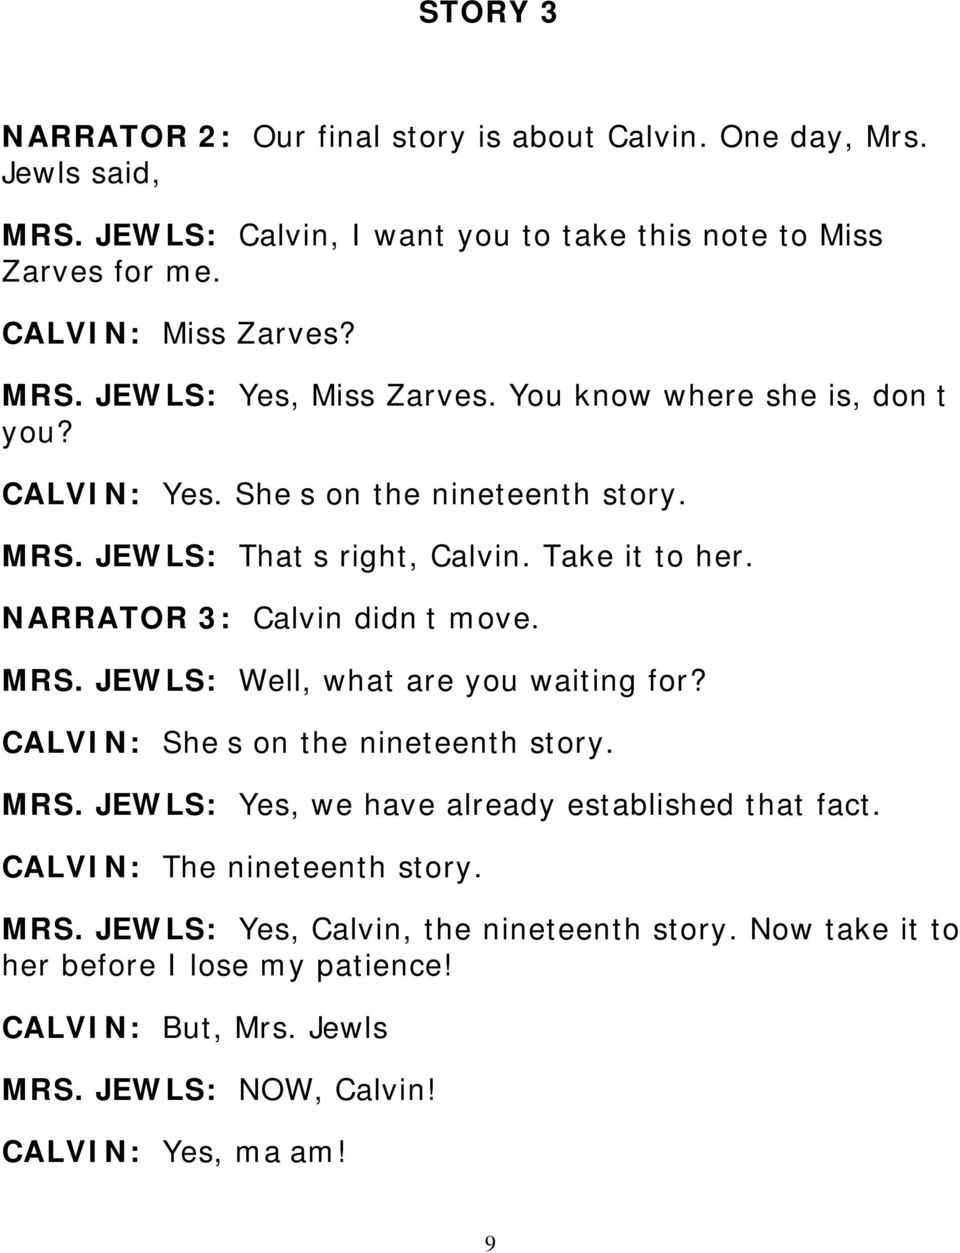 NARRATOR 3: Calvin didn t move. MRS. JEWLS: Well, what are you waiting for? CALVIN: She s on the nineteenth story. MRS. JEWLS: Yes, we have already established that fact.